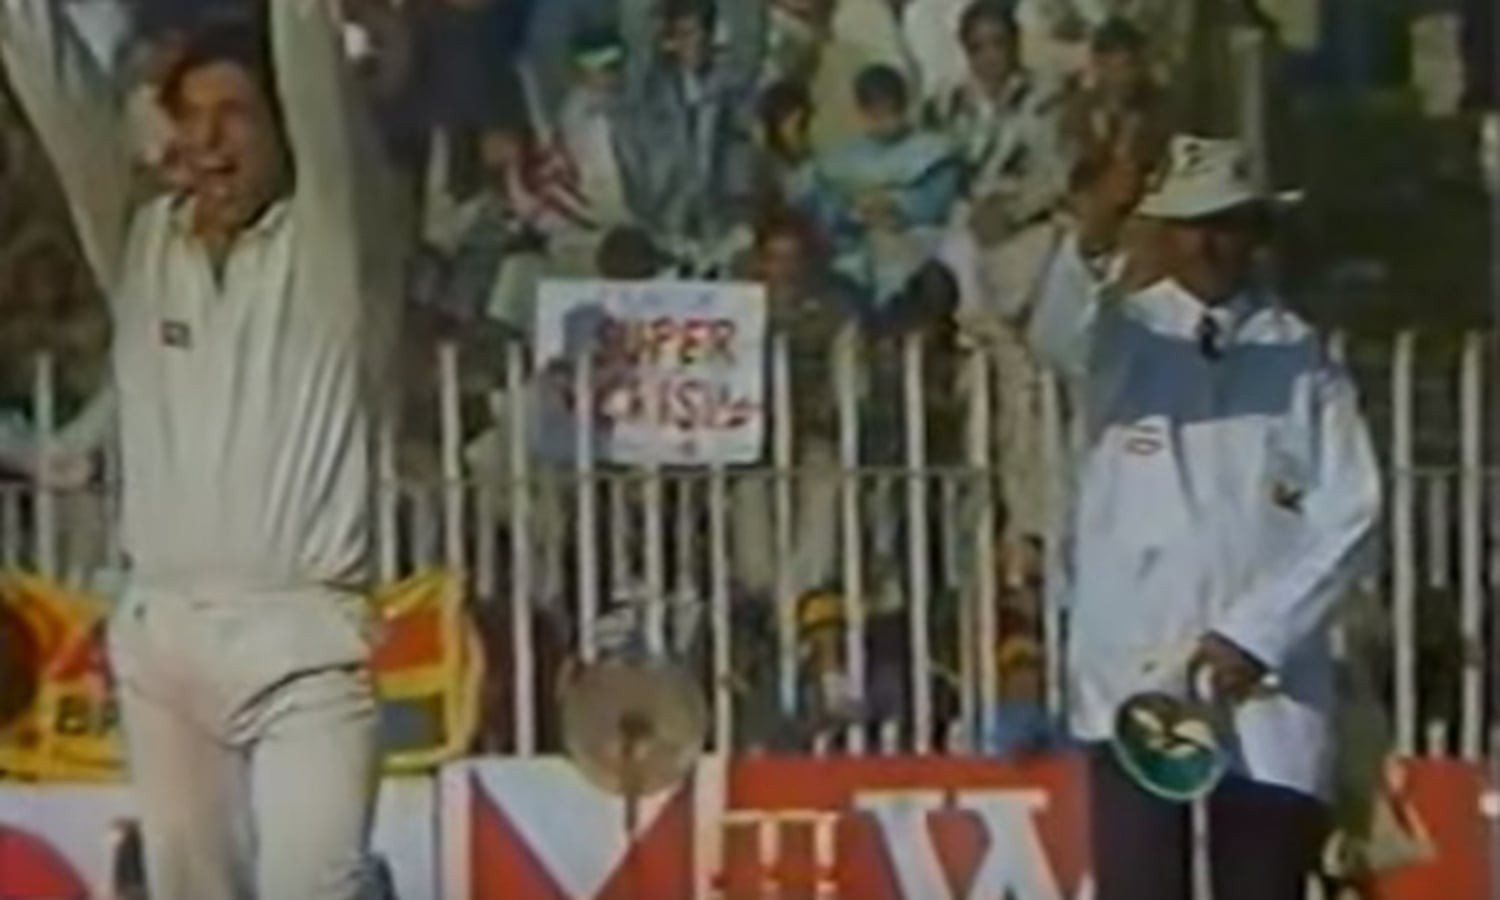 Screen-grab of former Pakistan captain and fast bowler, Wasim Akram, in action during the first-ever Test match played at Rawalpindi Cricket Stadium in 1993.